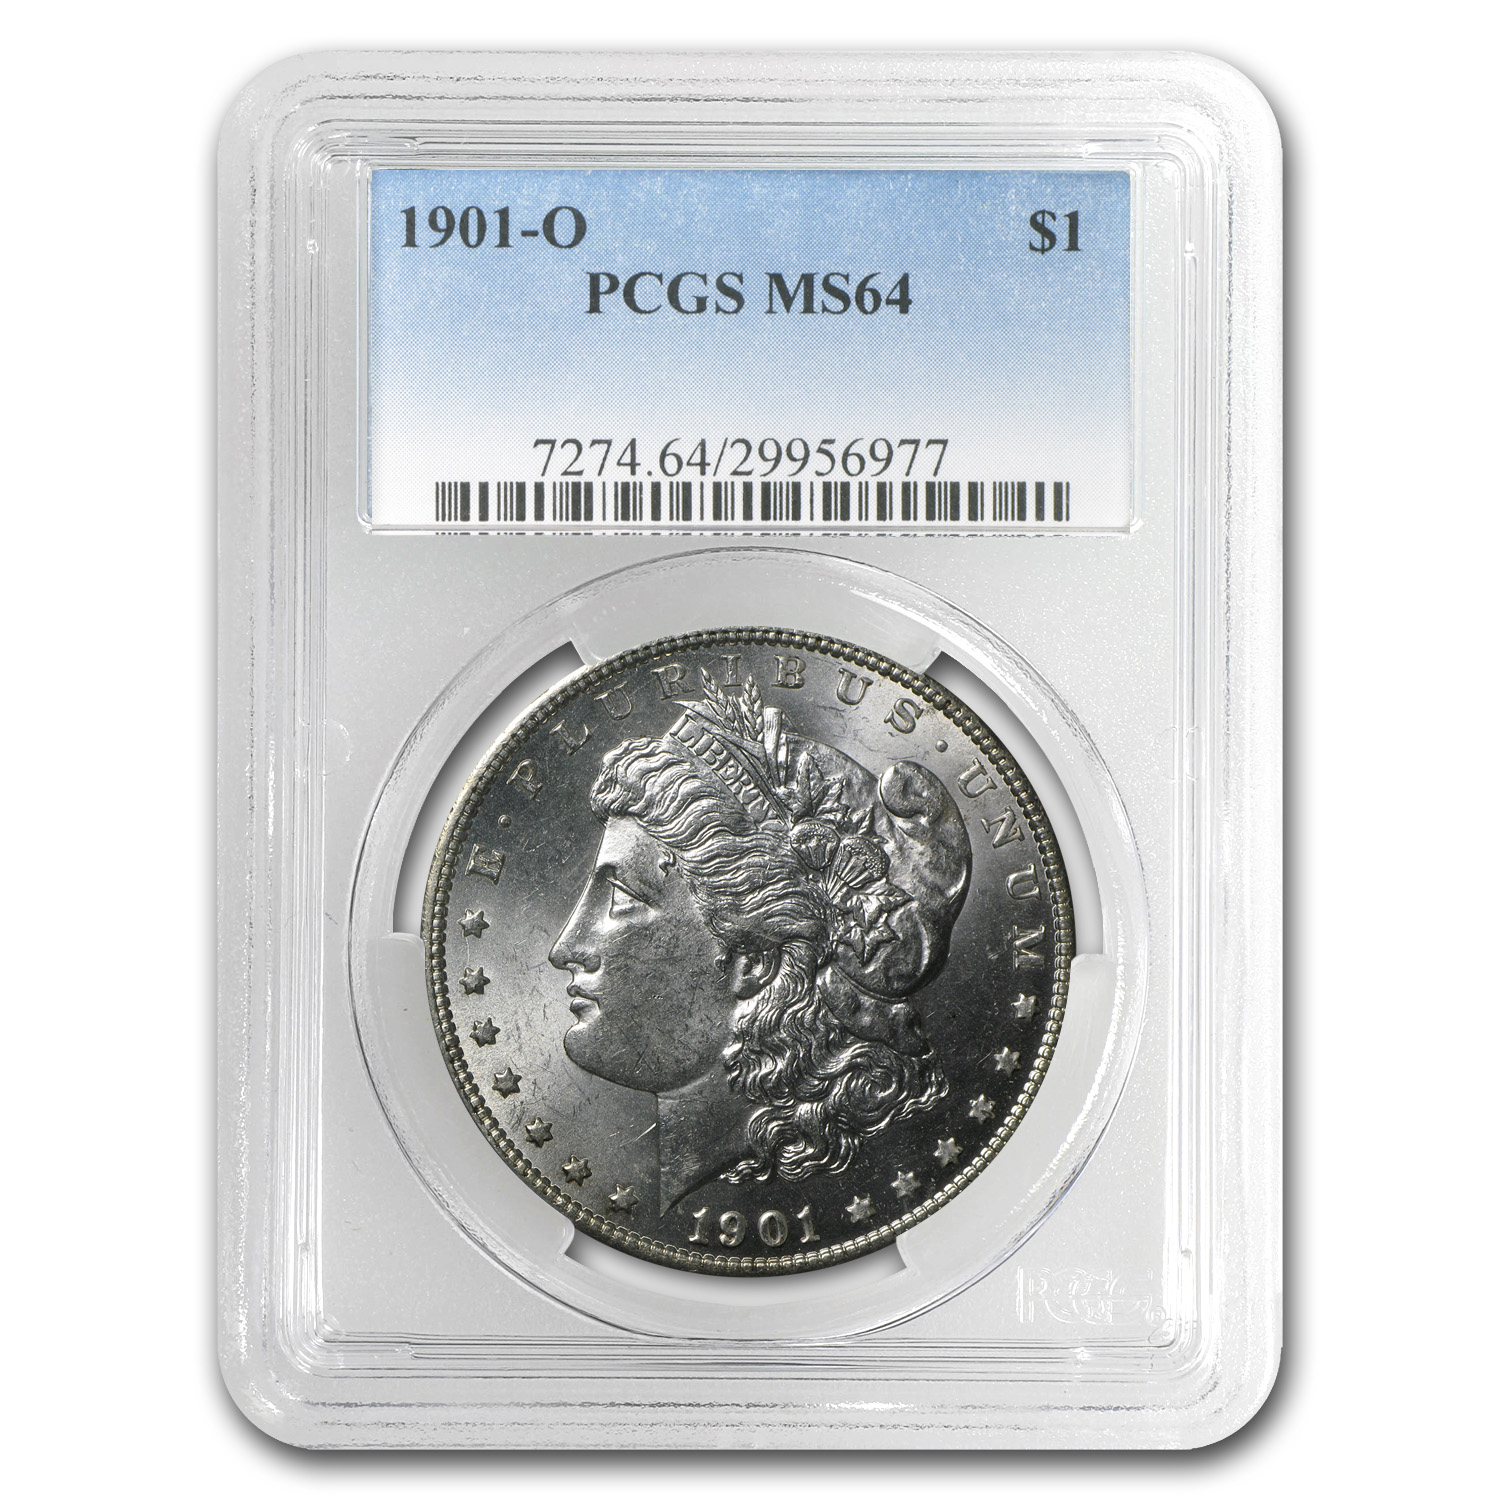 1901-O MS-64 PCGS (VAM-39A, Fish Hook Elite, Clashed Die)